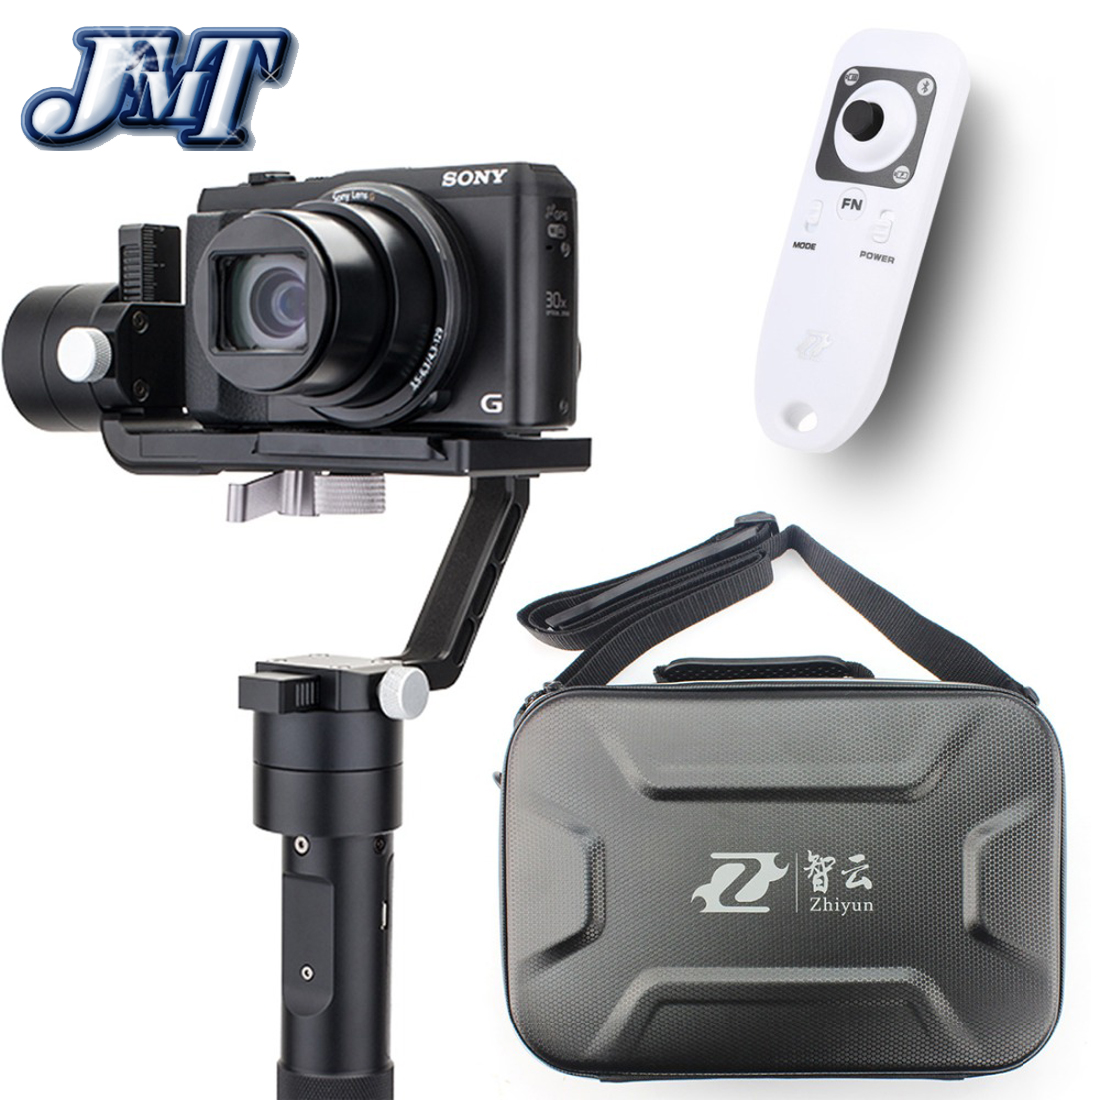 Zhiyun Crane M 3-Axle Handheld Stabilizer Gimbal + Remote Controller B01 +Carry Case for Gopro Camera 125g-650g Smartphone